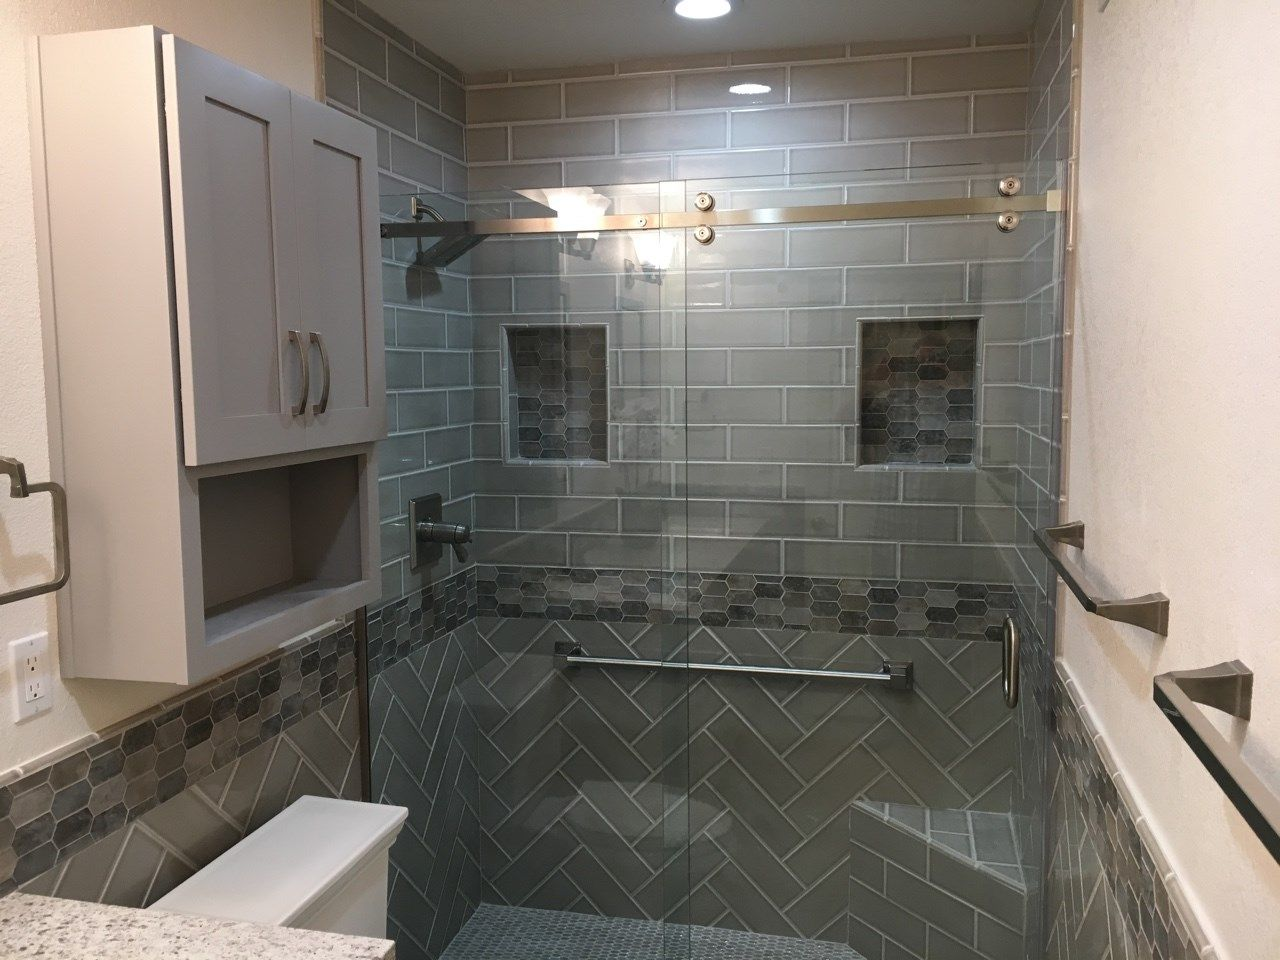 A Mix Of Brick Lay Tile And Herringbone Lay 4 X 12 Tile Separated By A Charismatic Glass Mosaic B Home Remodeling Contractors Bathroom Design Dream Bathrooms